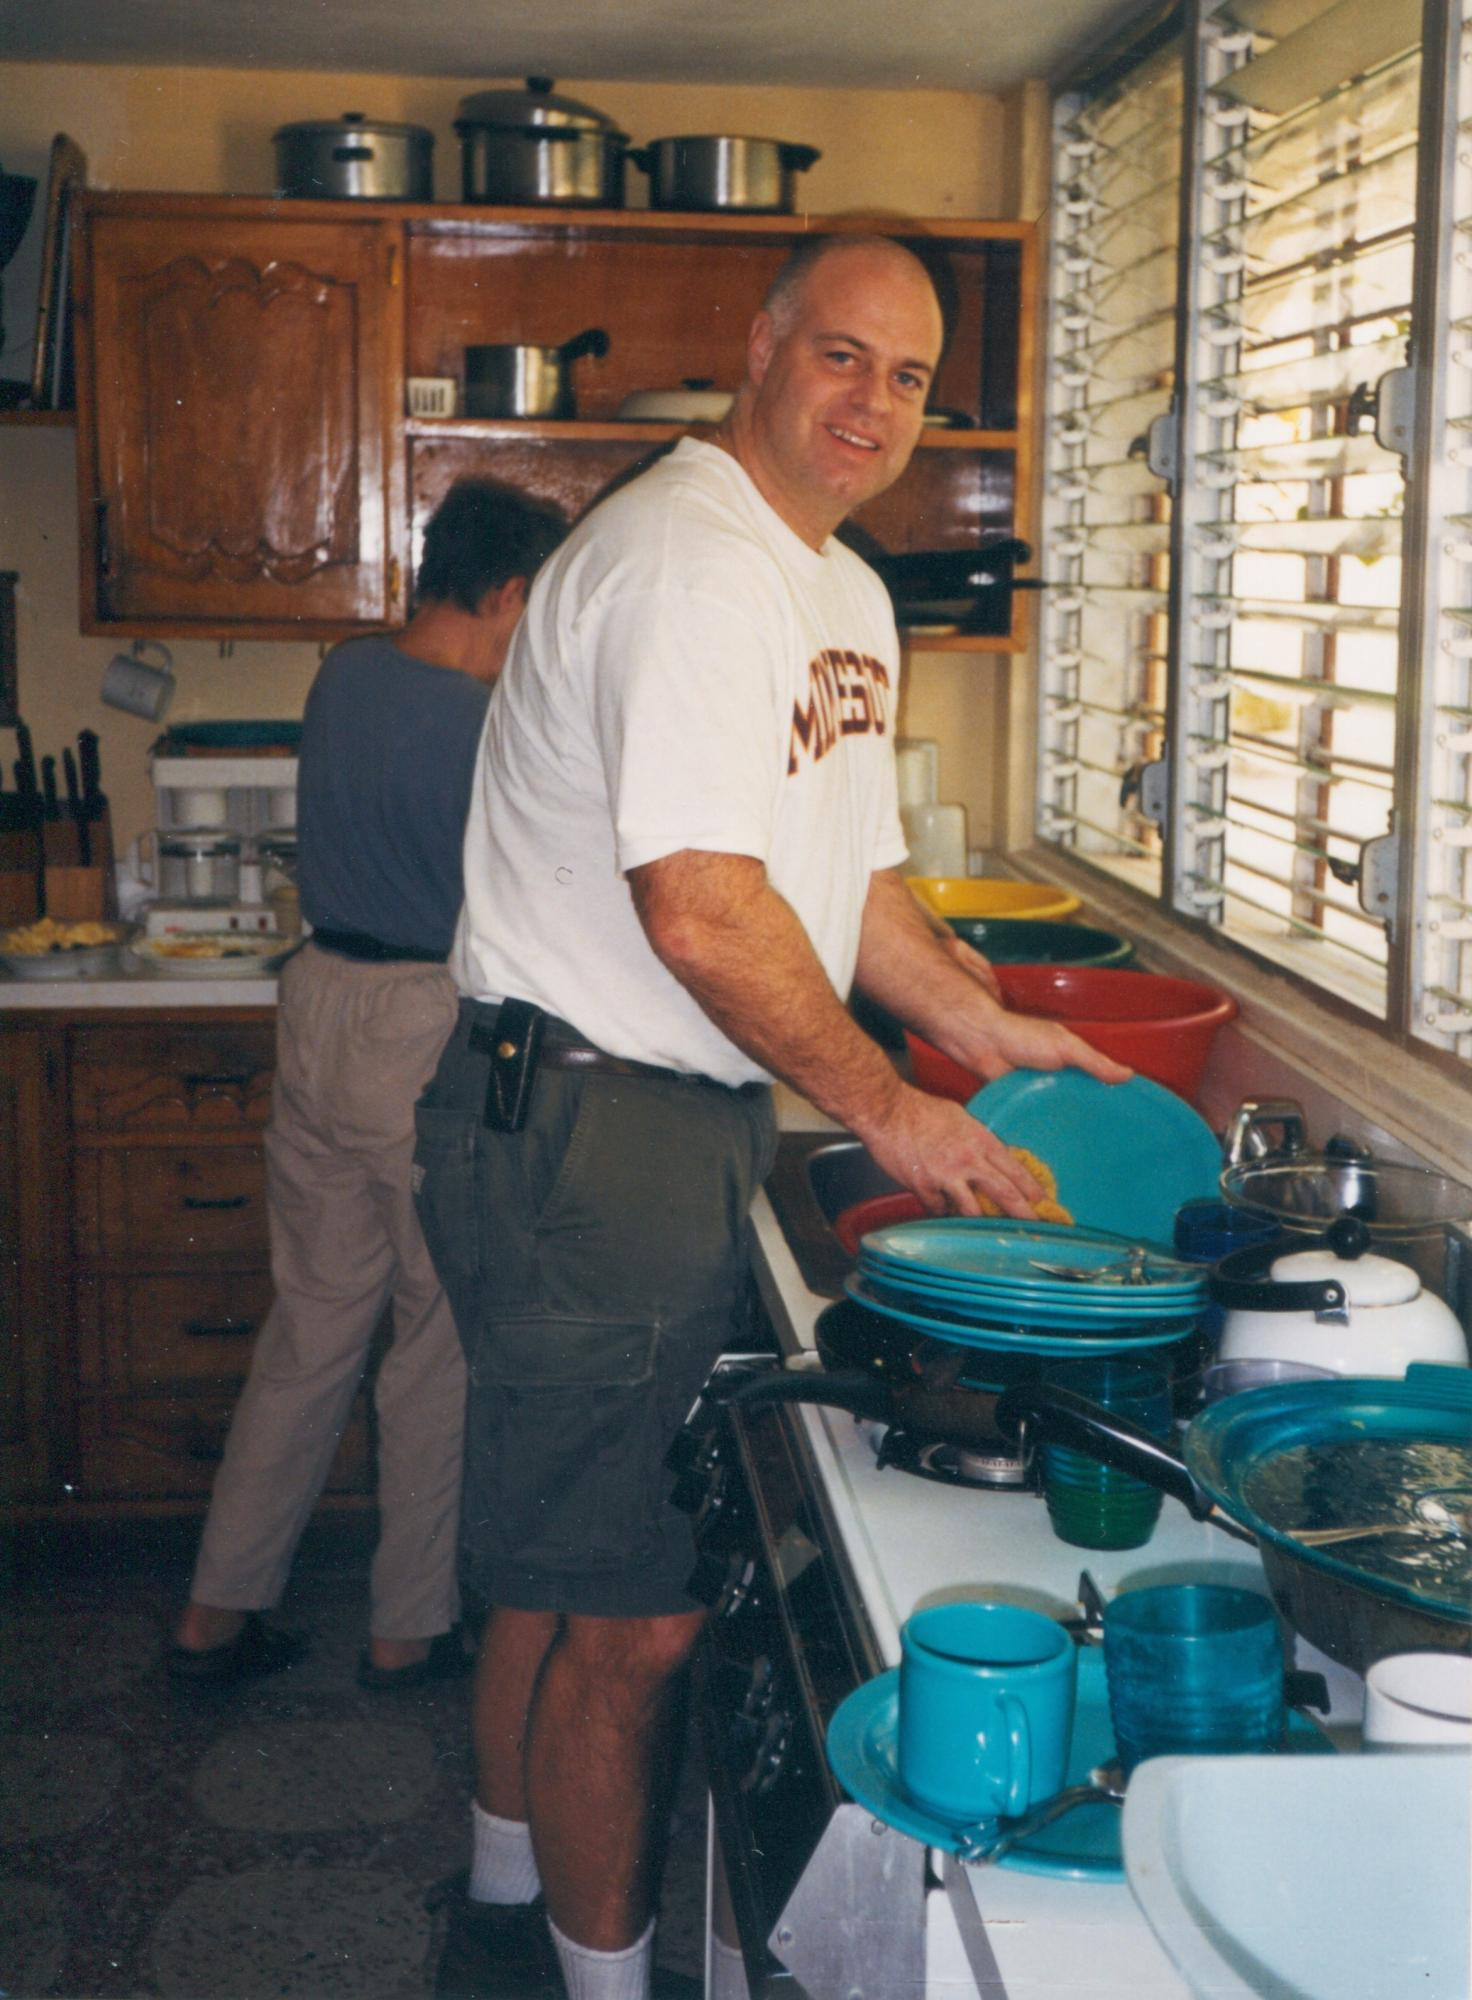 Team_members_clean_dishes__2000_image22.jpg